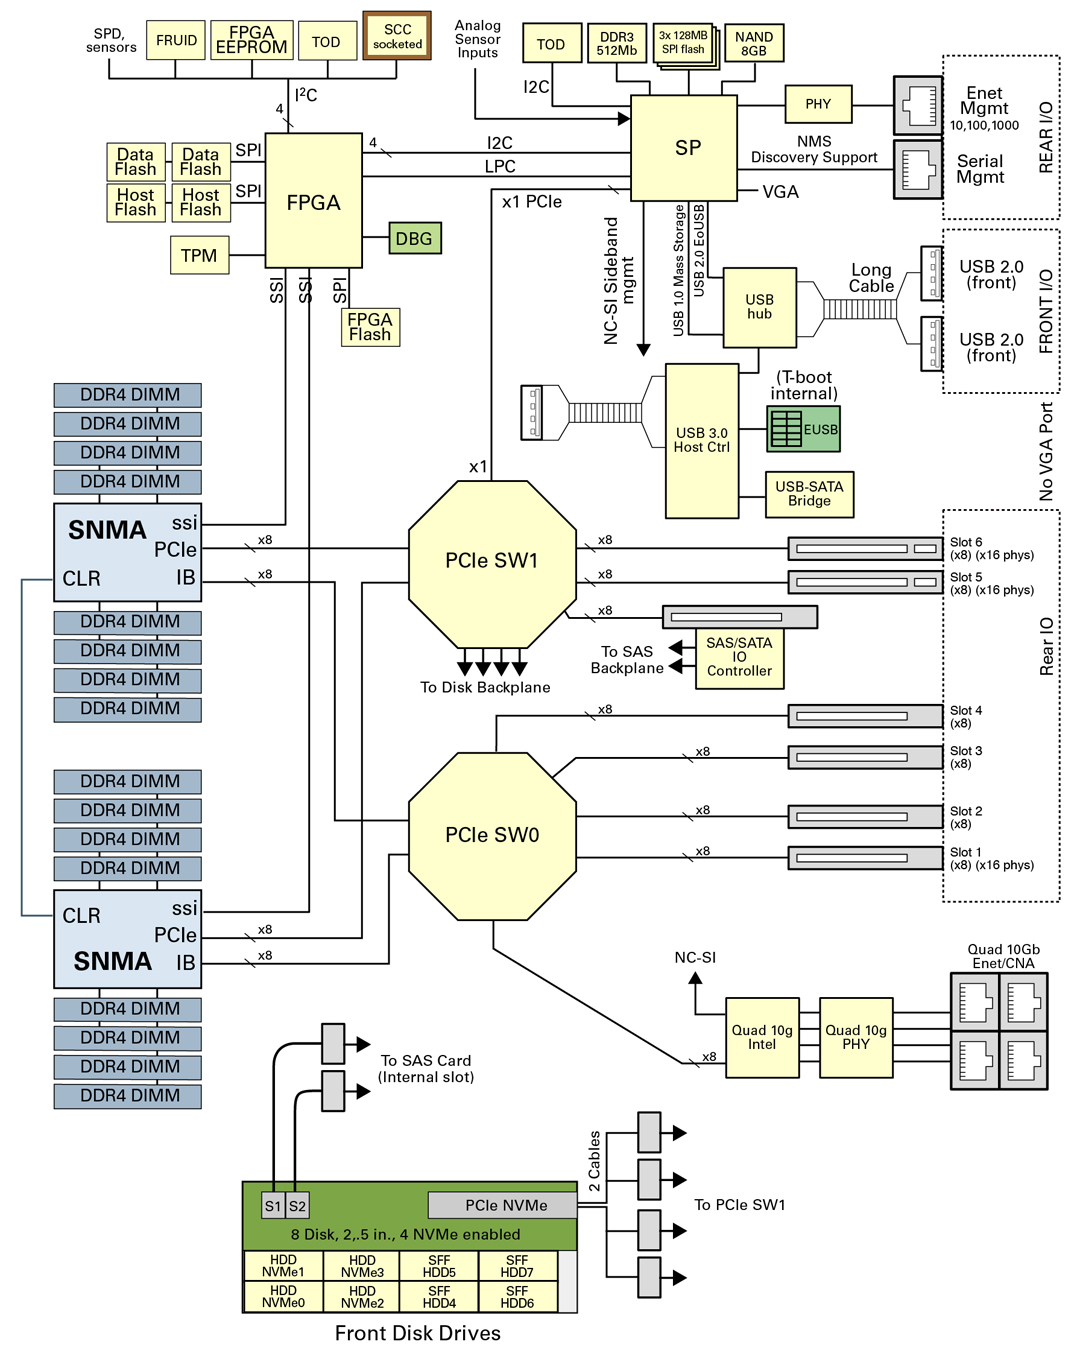 hight resolution of image figure showing block diagram of server components